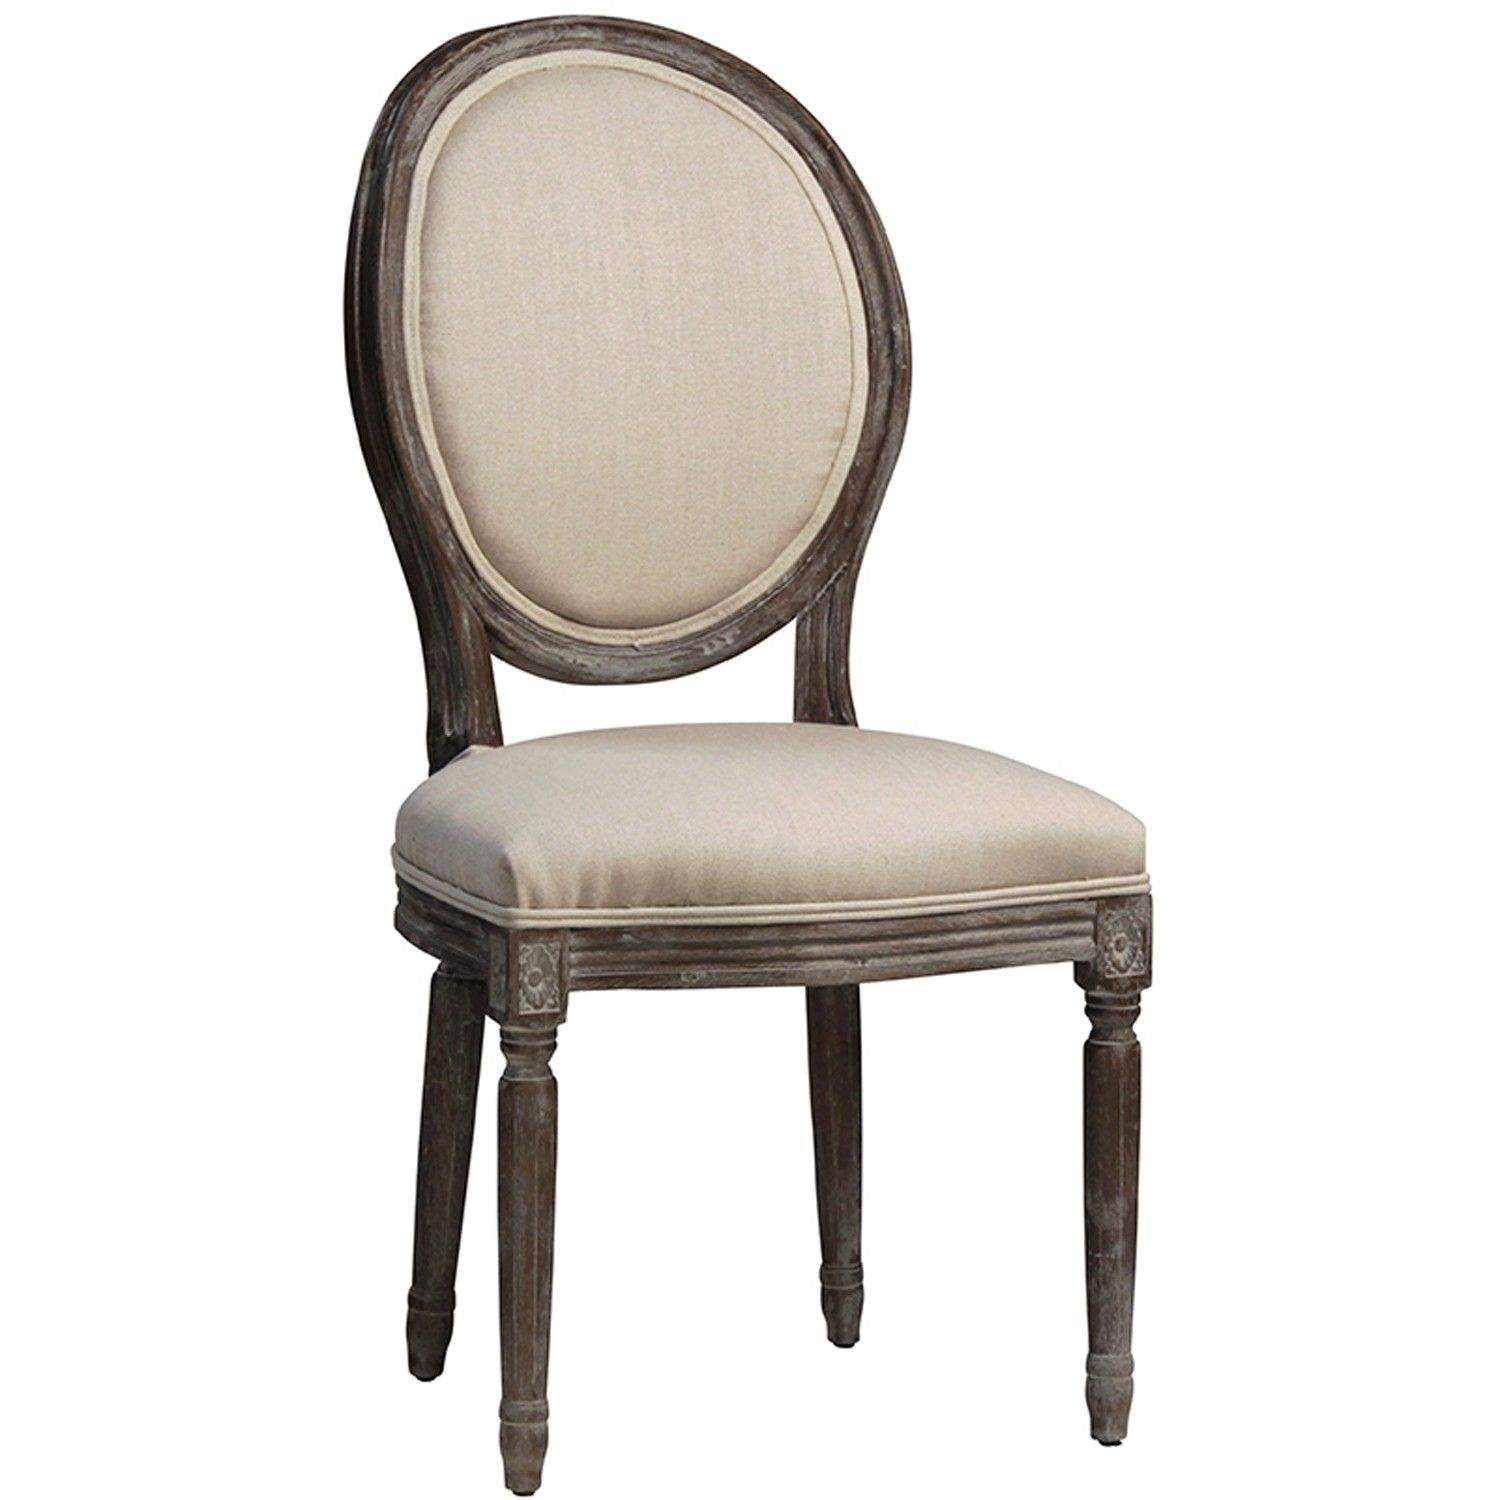 Cassis Dining Chair In Weathered Finish Dining Chairs Chair Dining